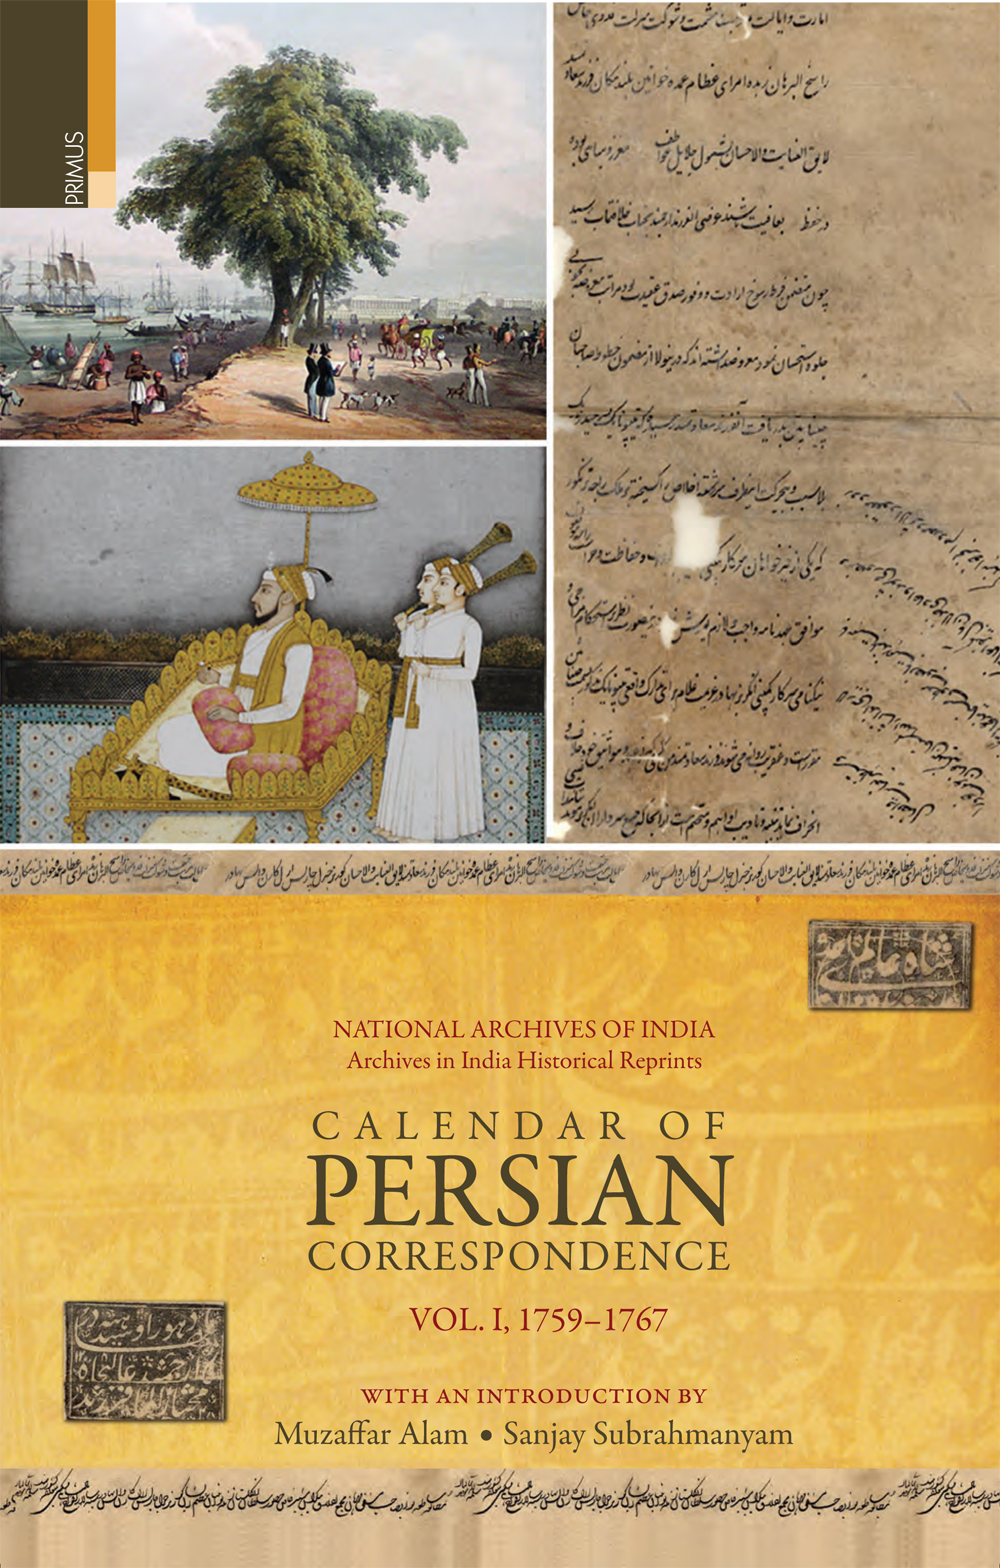 Calendar of Persian Correspondence With and Introduction by Muzaffar Alam and Sanjay Subrahmanyam, Volume I: 1759-1767